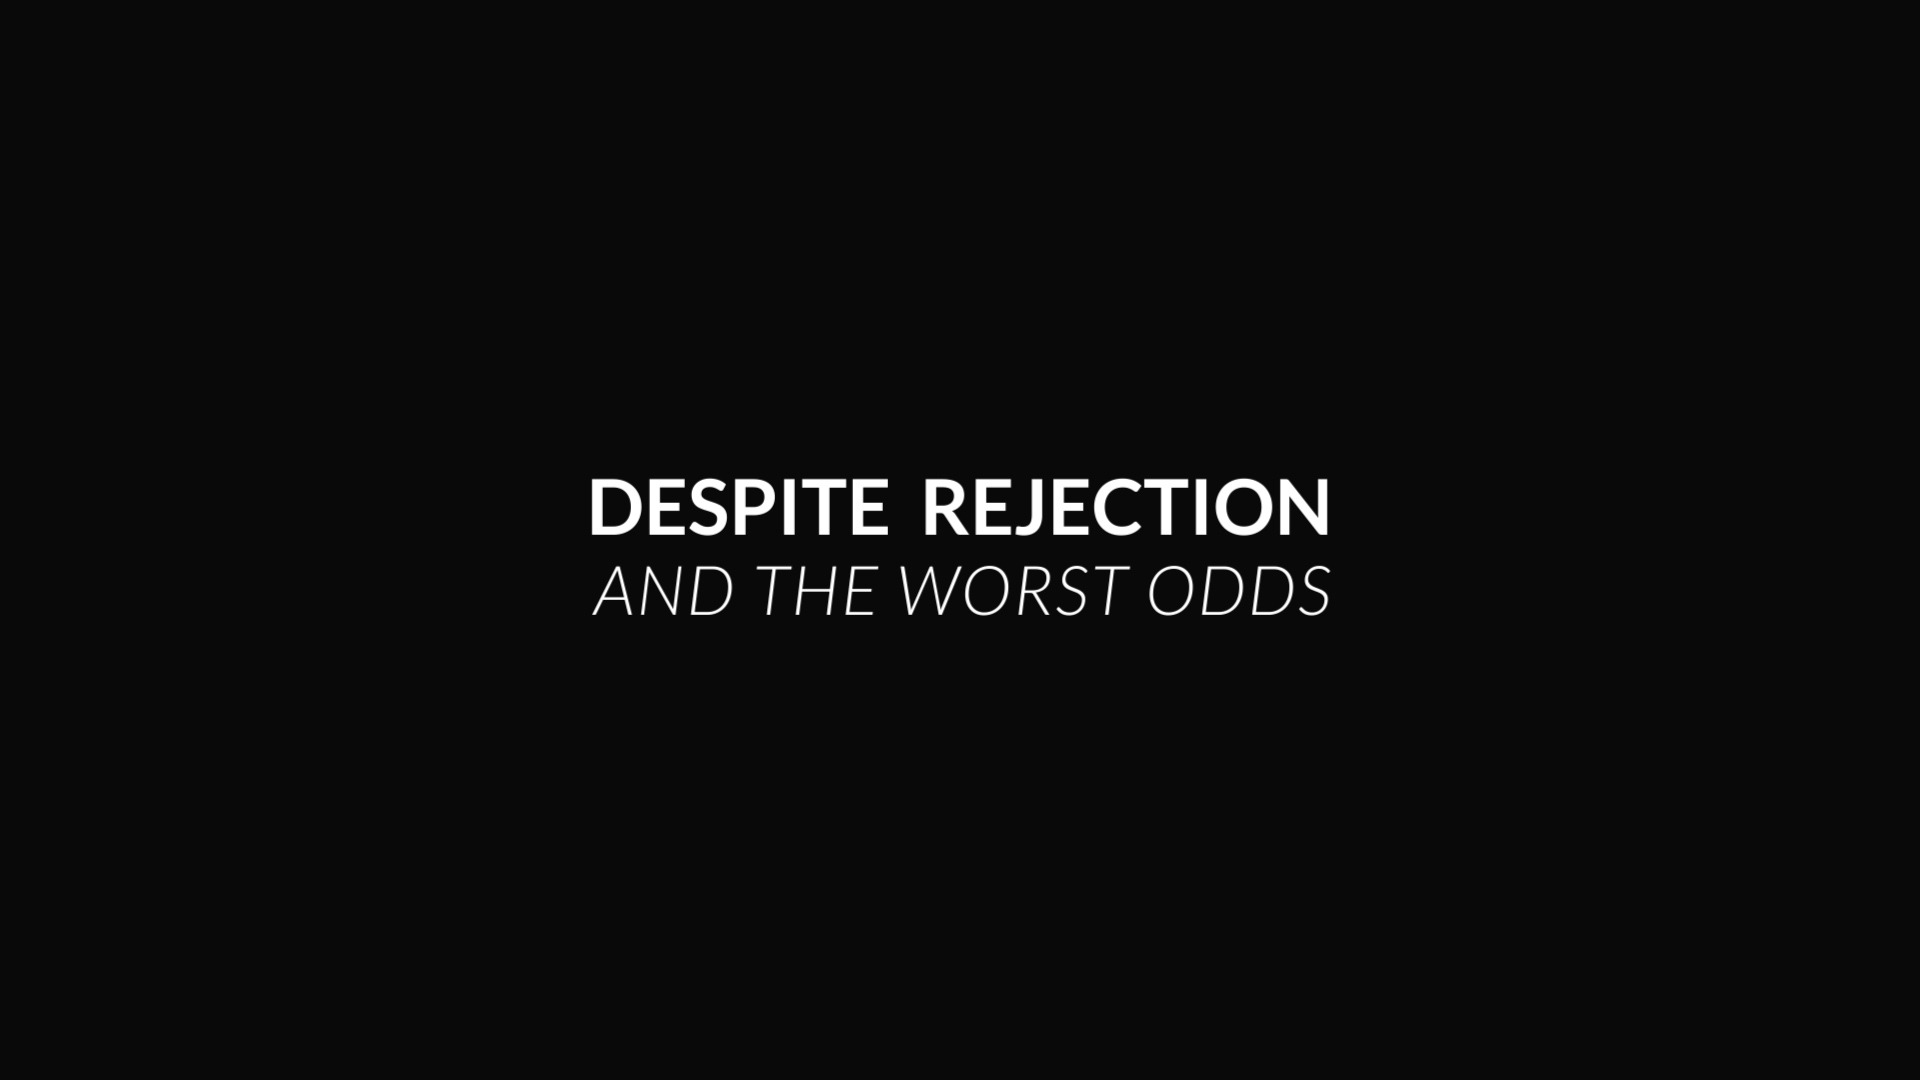 Despite rejection poem roll the dice